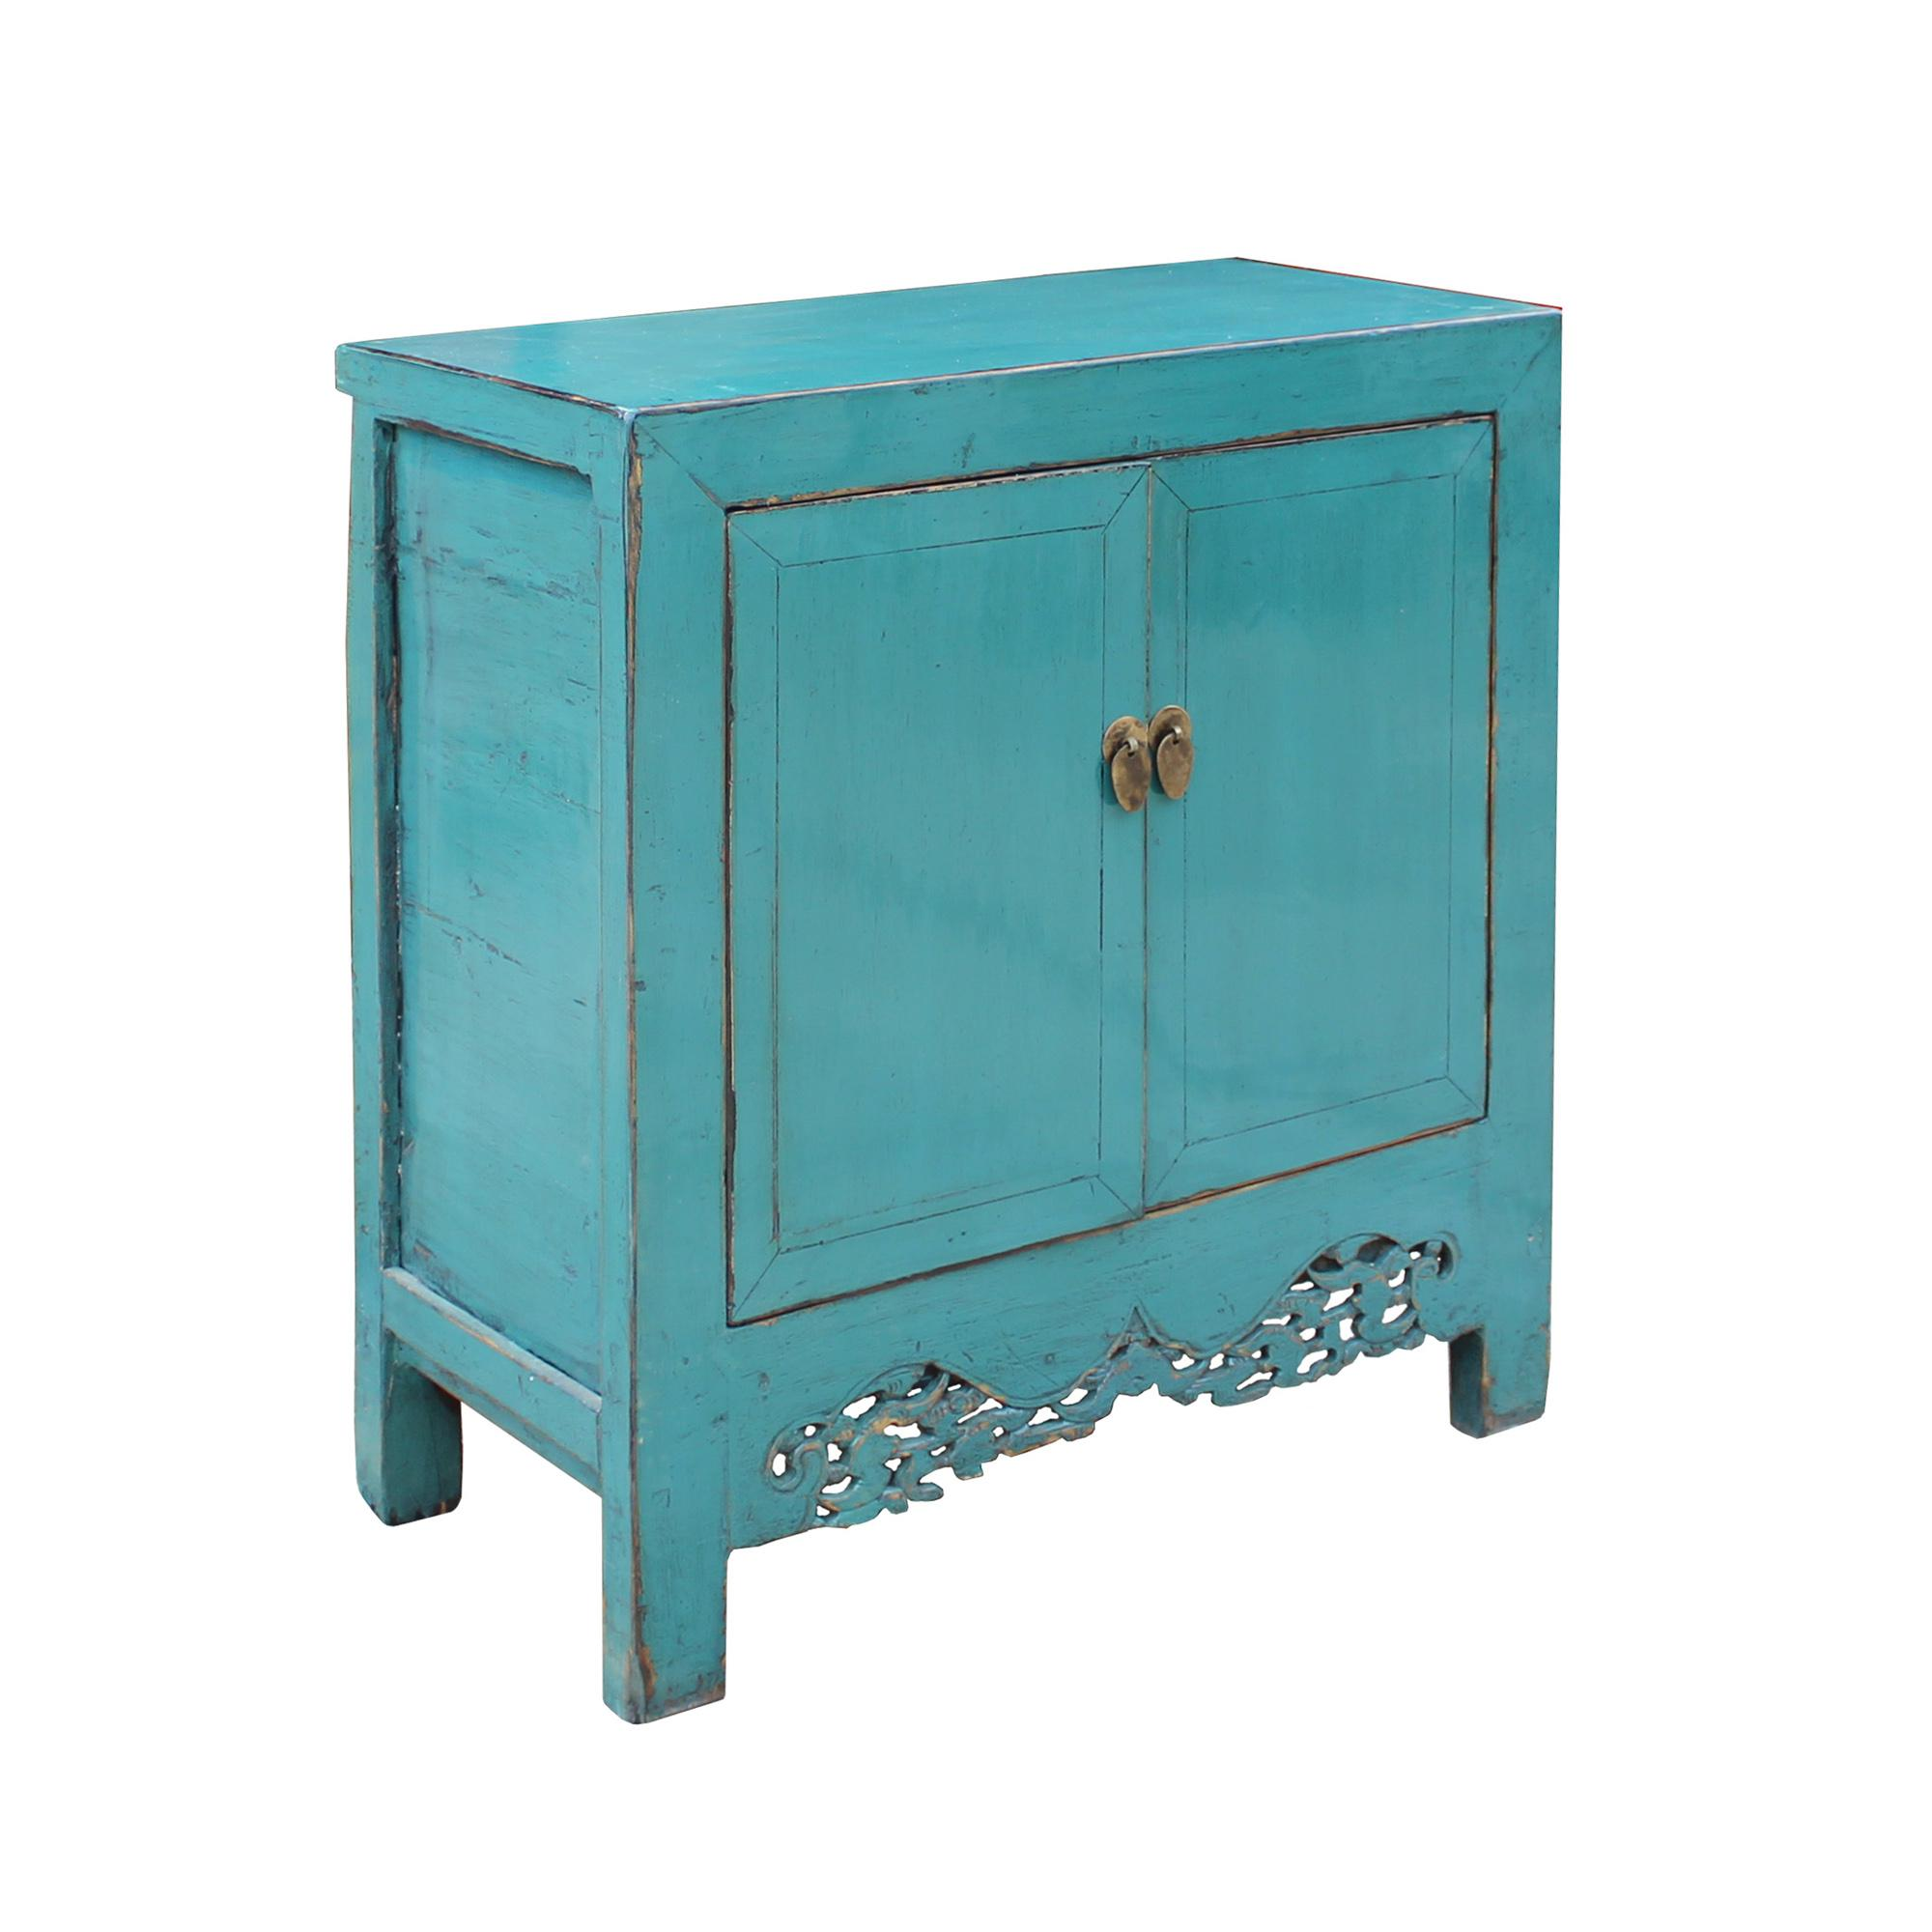 Chinese Distressed Rustic Aqua Blue Foyer Console Table Cabinet